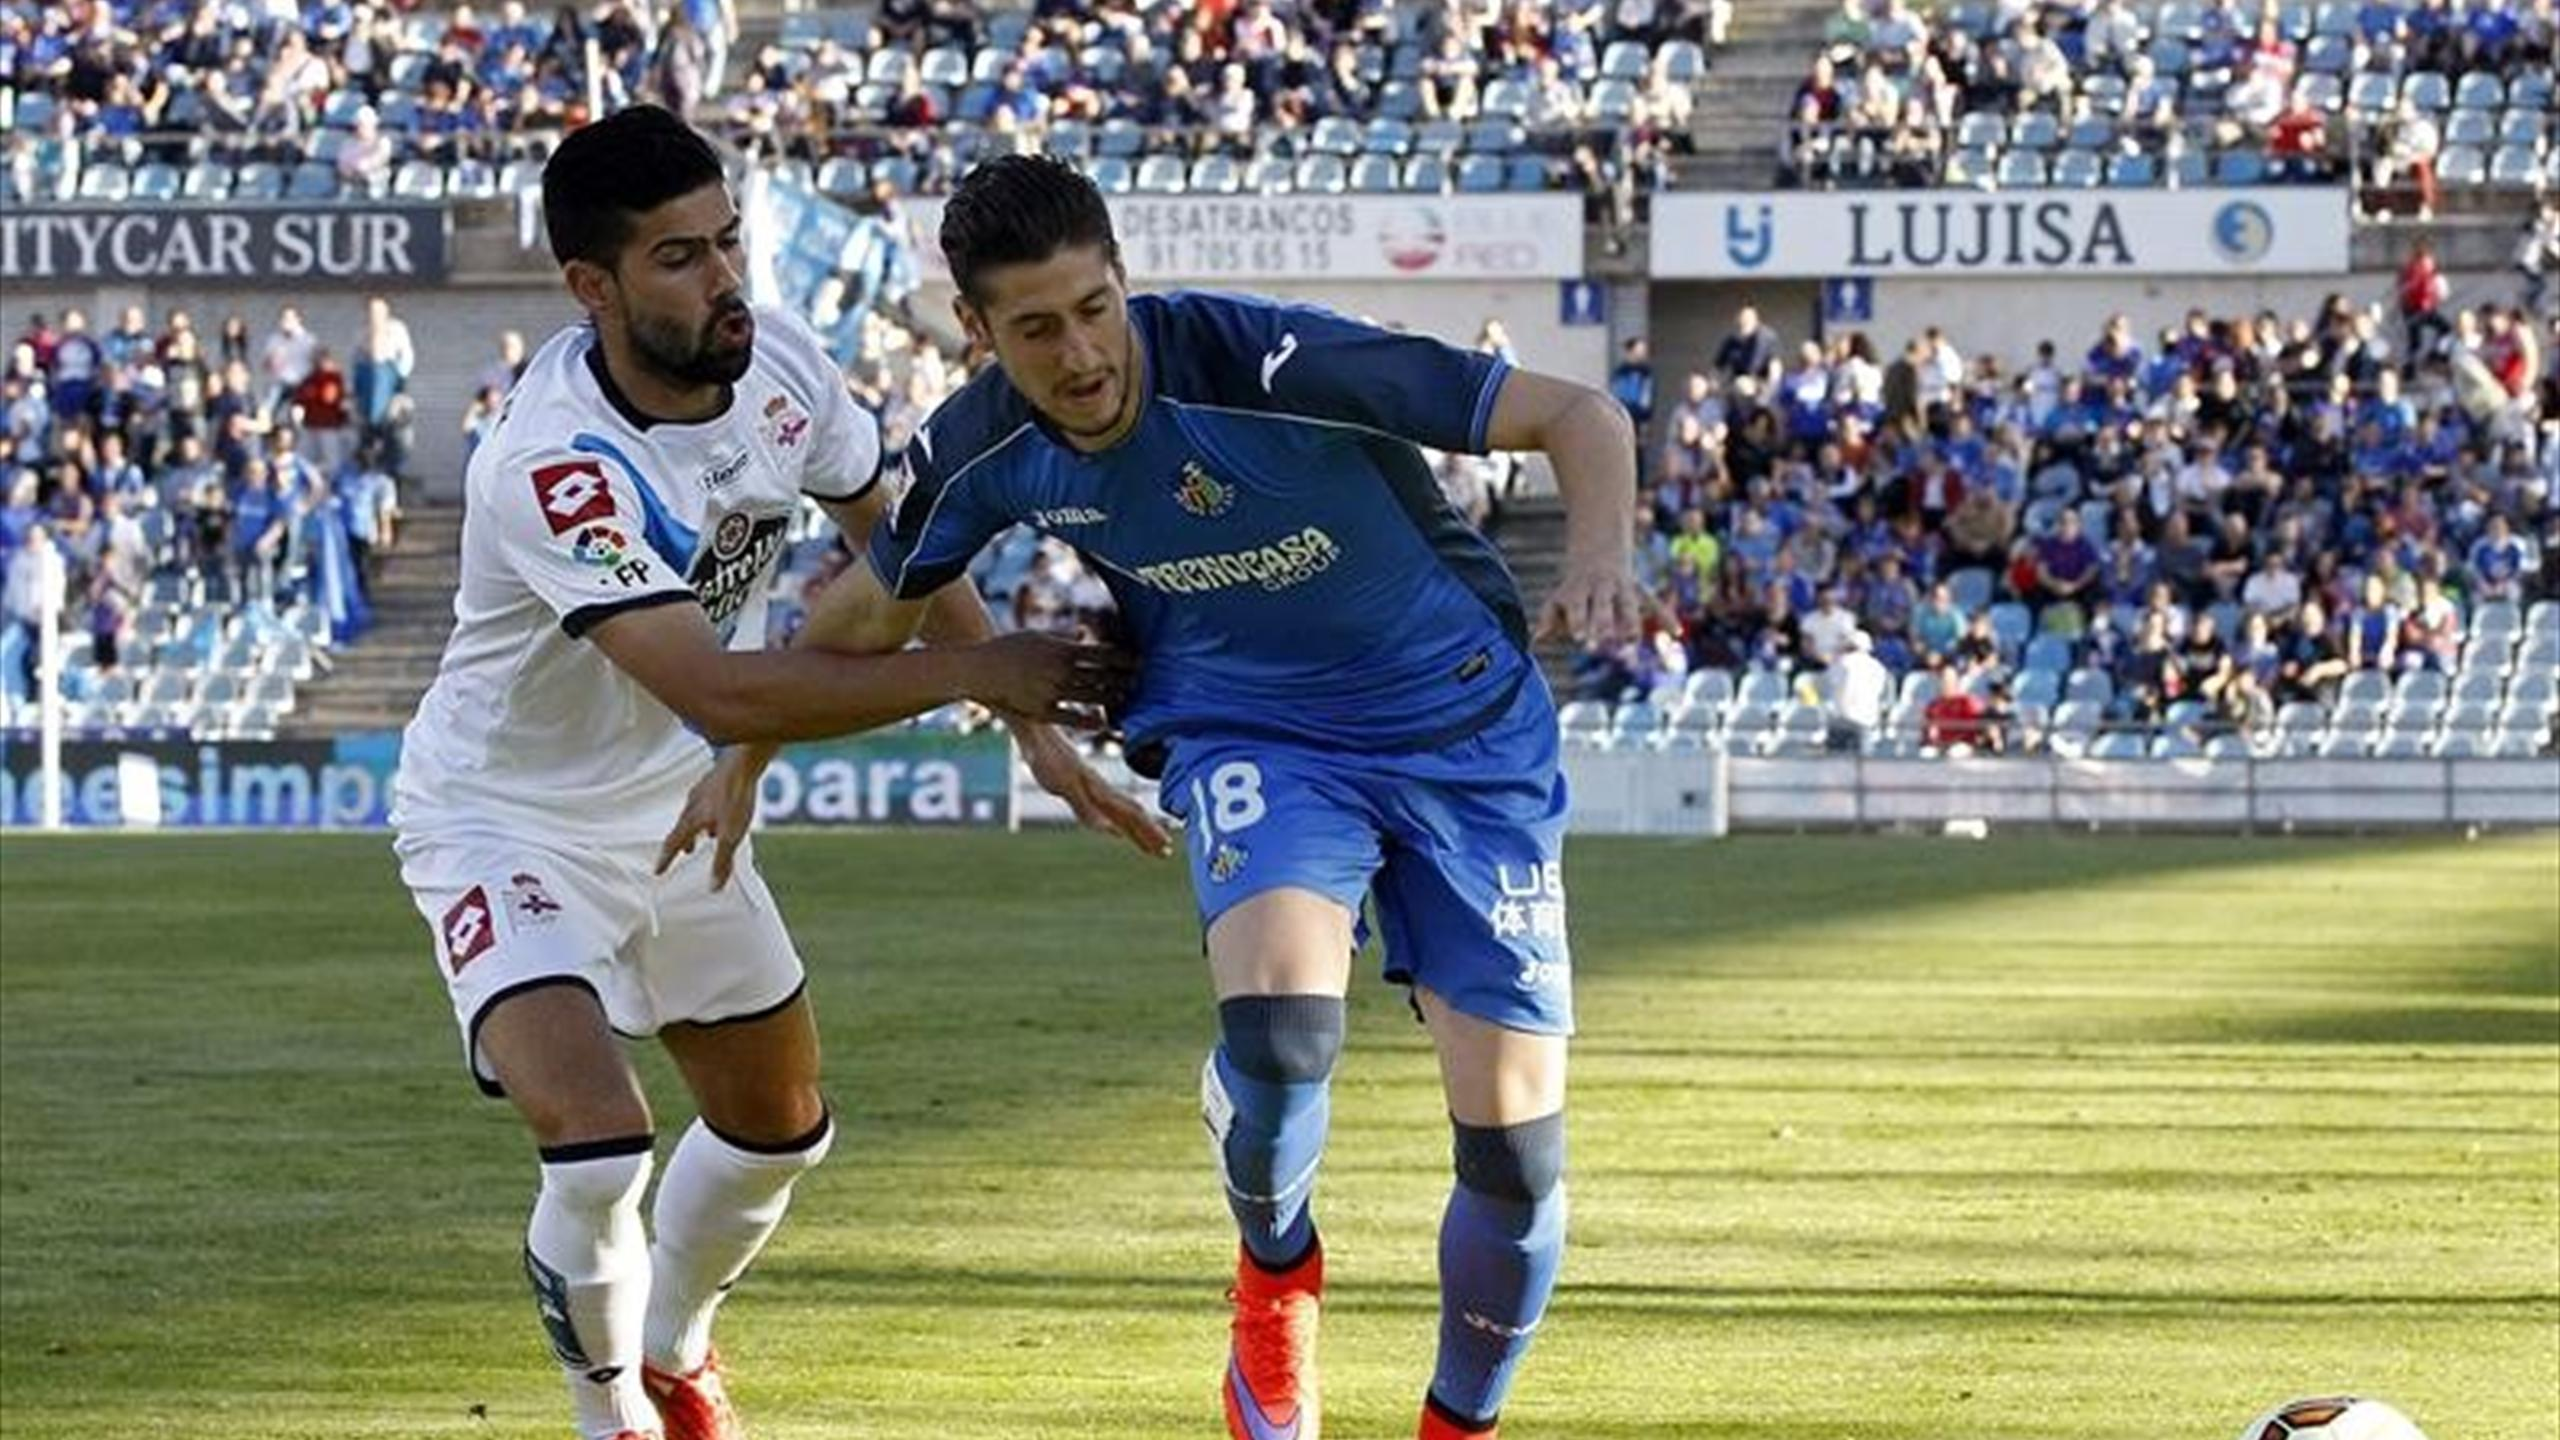 Video: Getafe vs Deportivo La Coruna